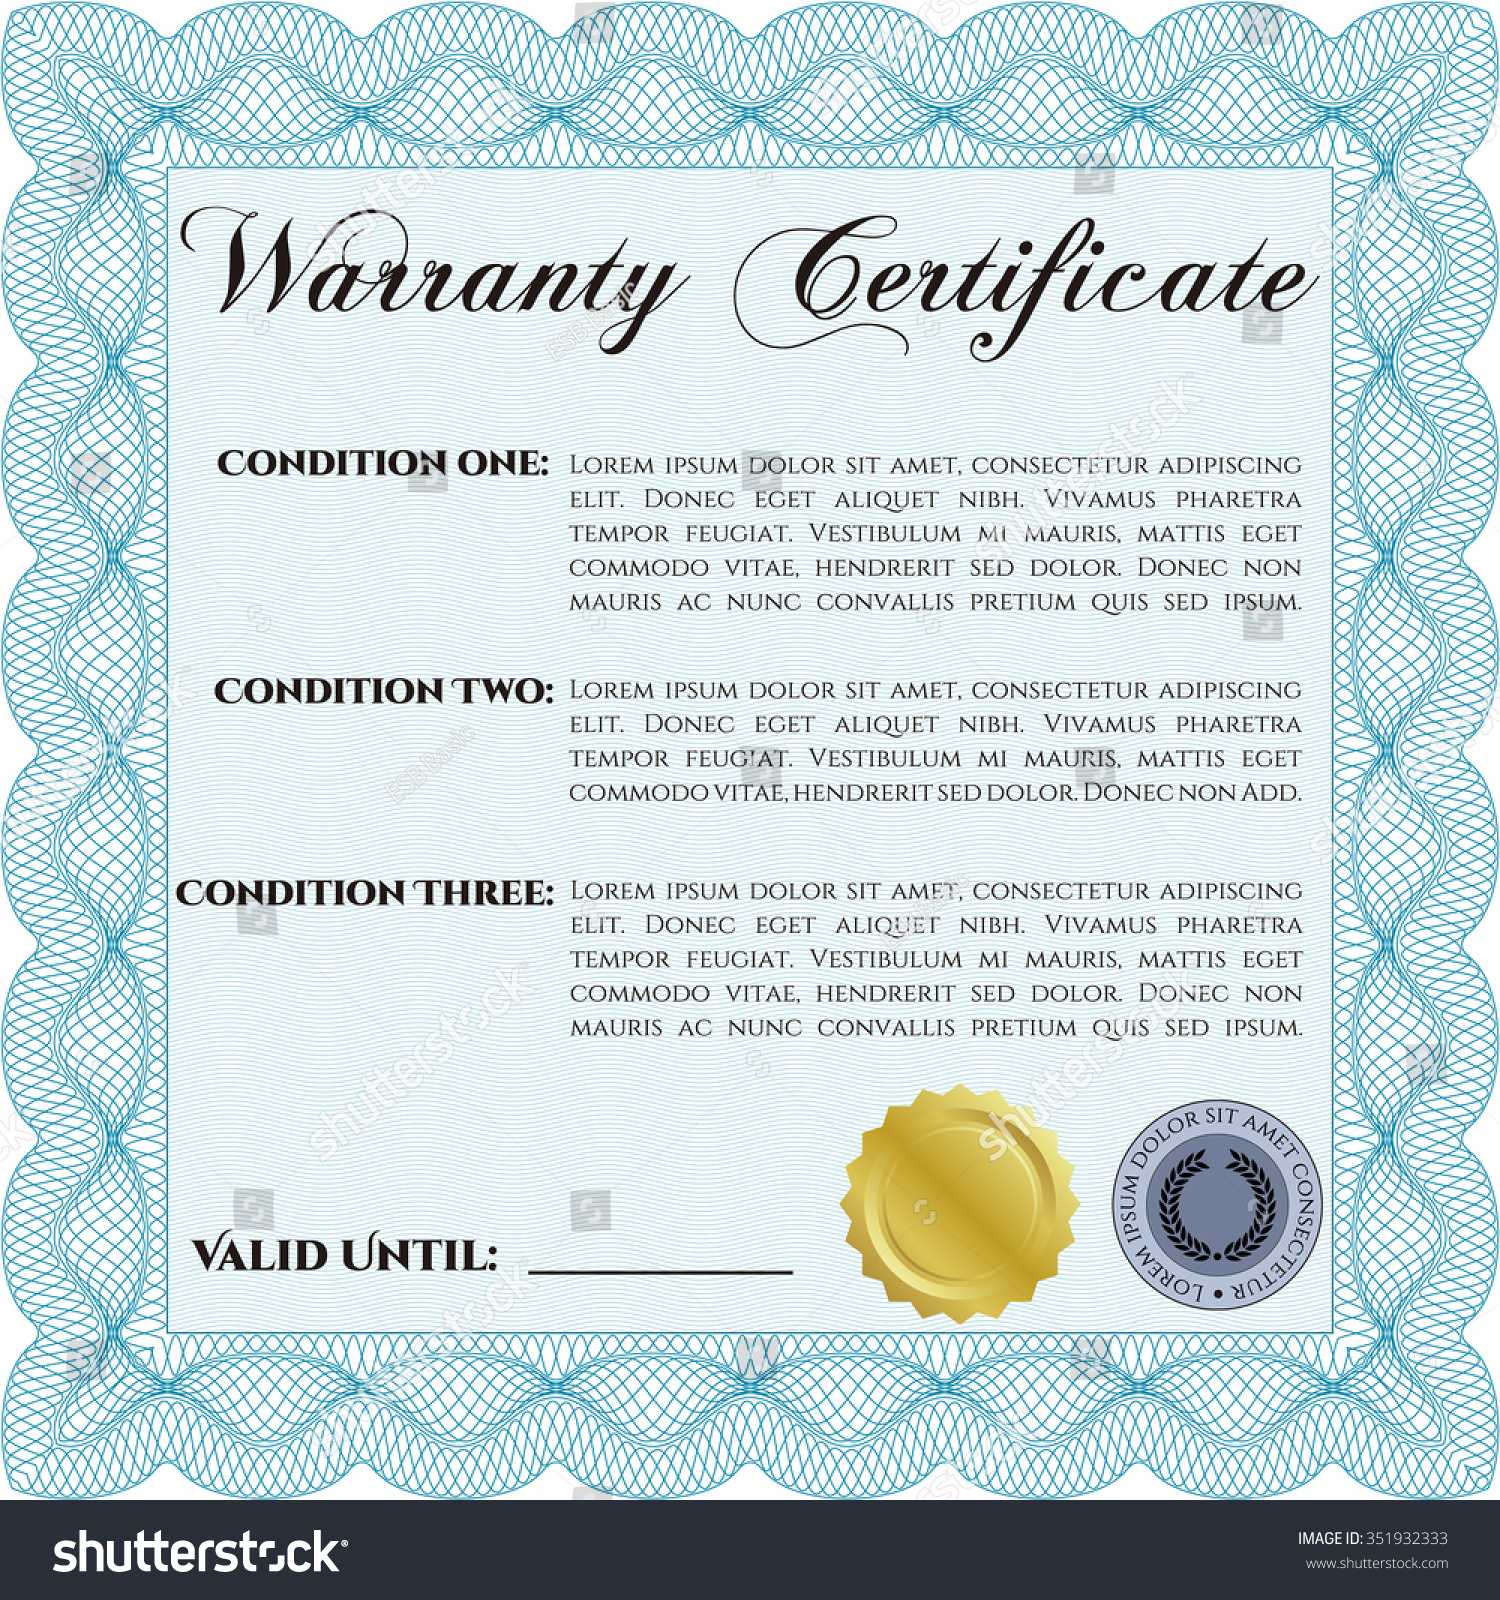 Download lifetime warranty certificate template microsoft office sample warranty certificate template very detailed stock vector stock vector sample warranty certificate template very detailed with sample text with xflitez Gallery